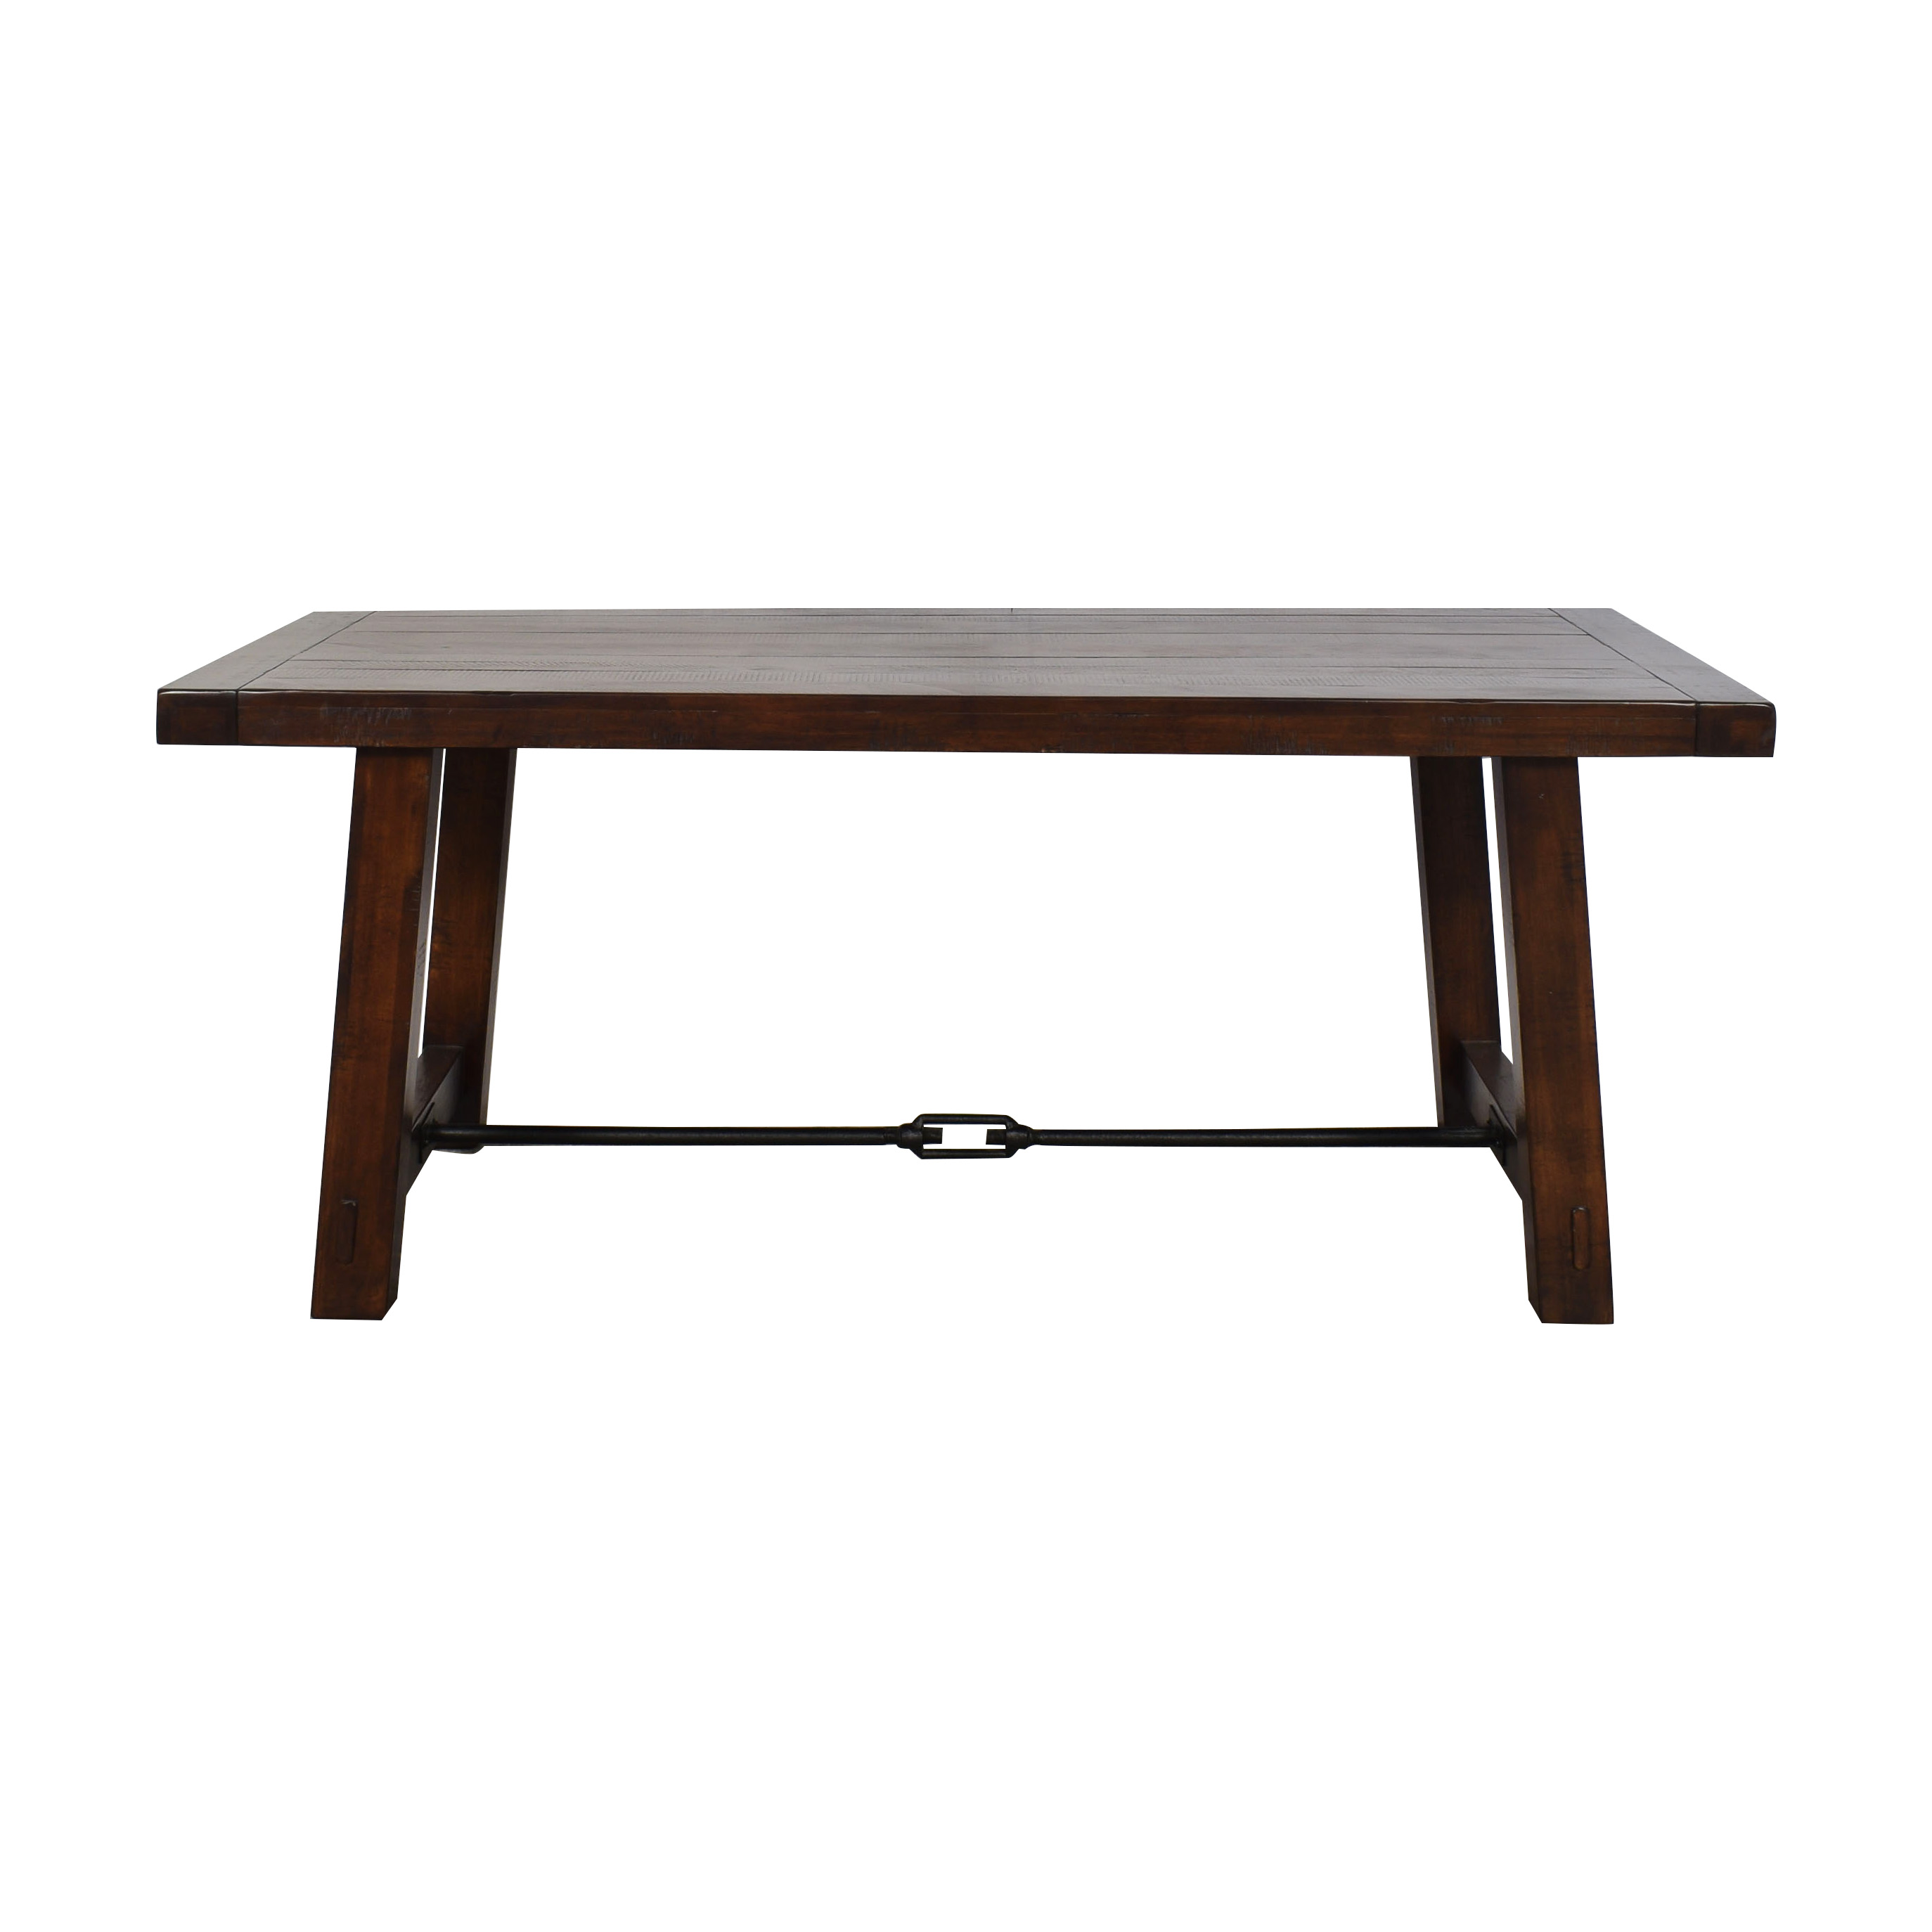 Pottery Barn Benchwright Dining Table sale